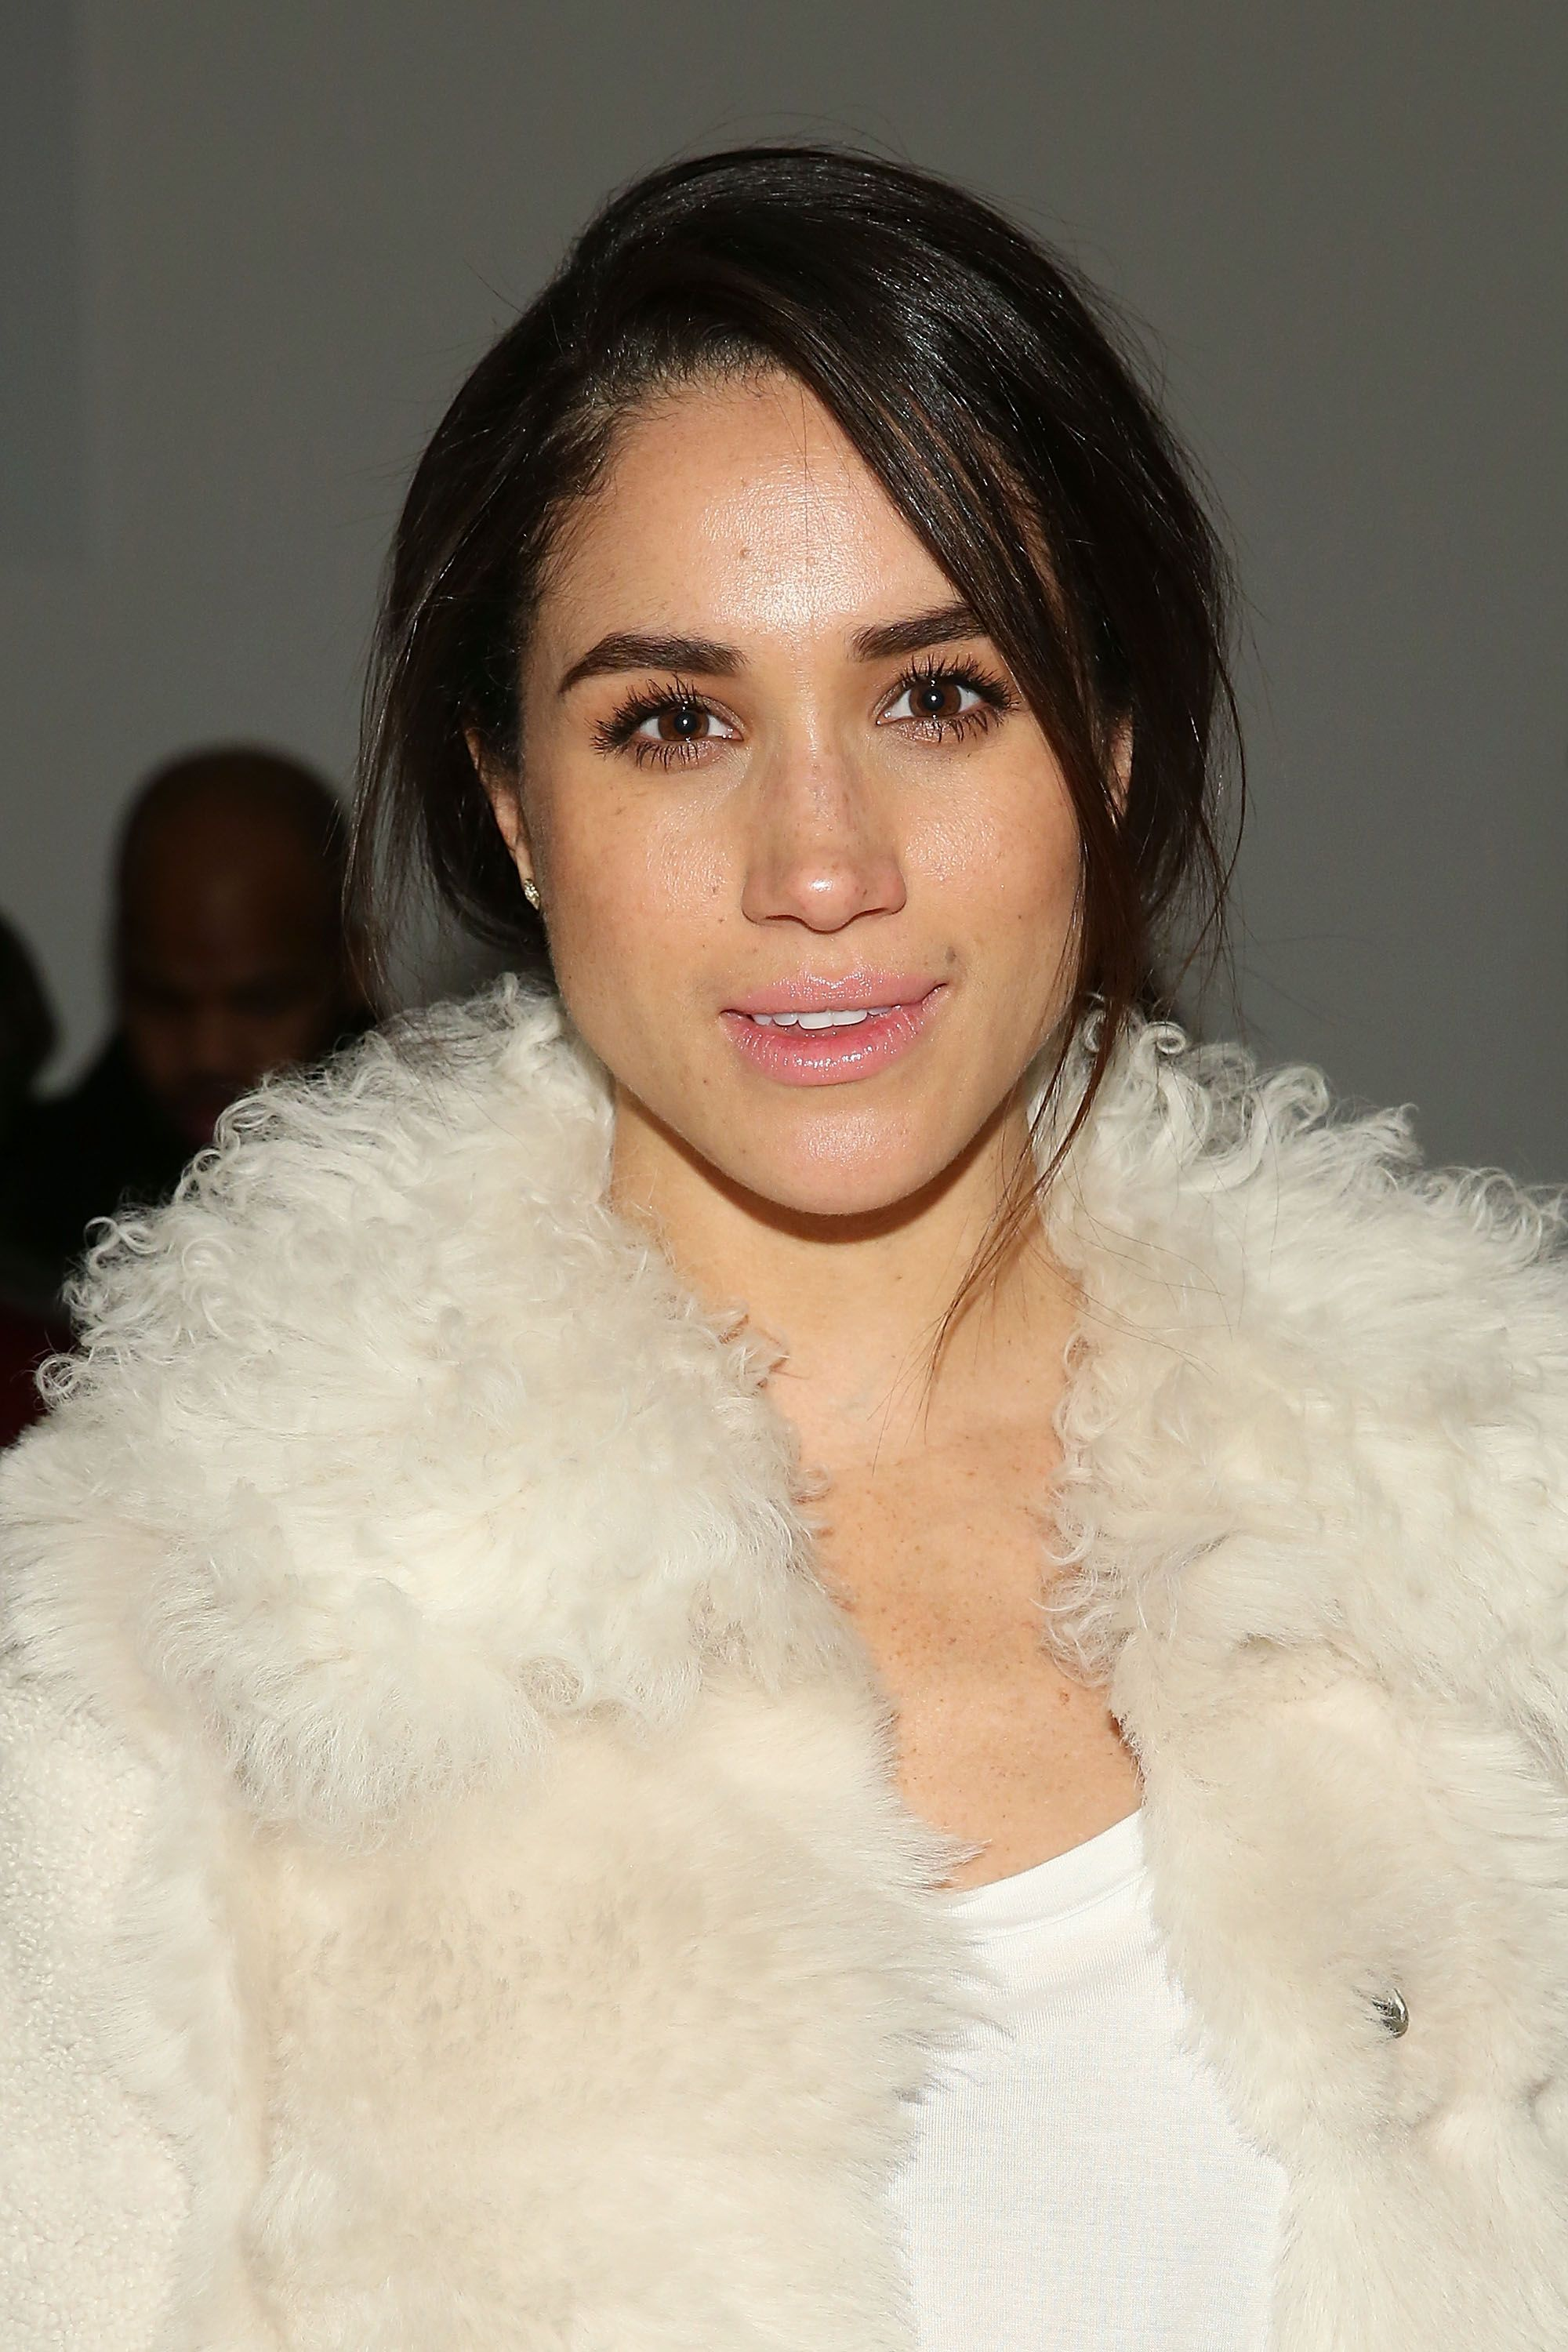 Meghan Markle during the Wes Gordon runway show during MADE Fashion Week Fall 2015 at Milk Studios on February 13, 2015 in New York City.   Source: Getty Images